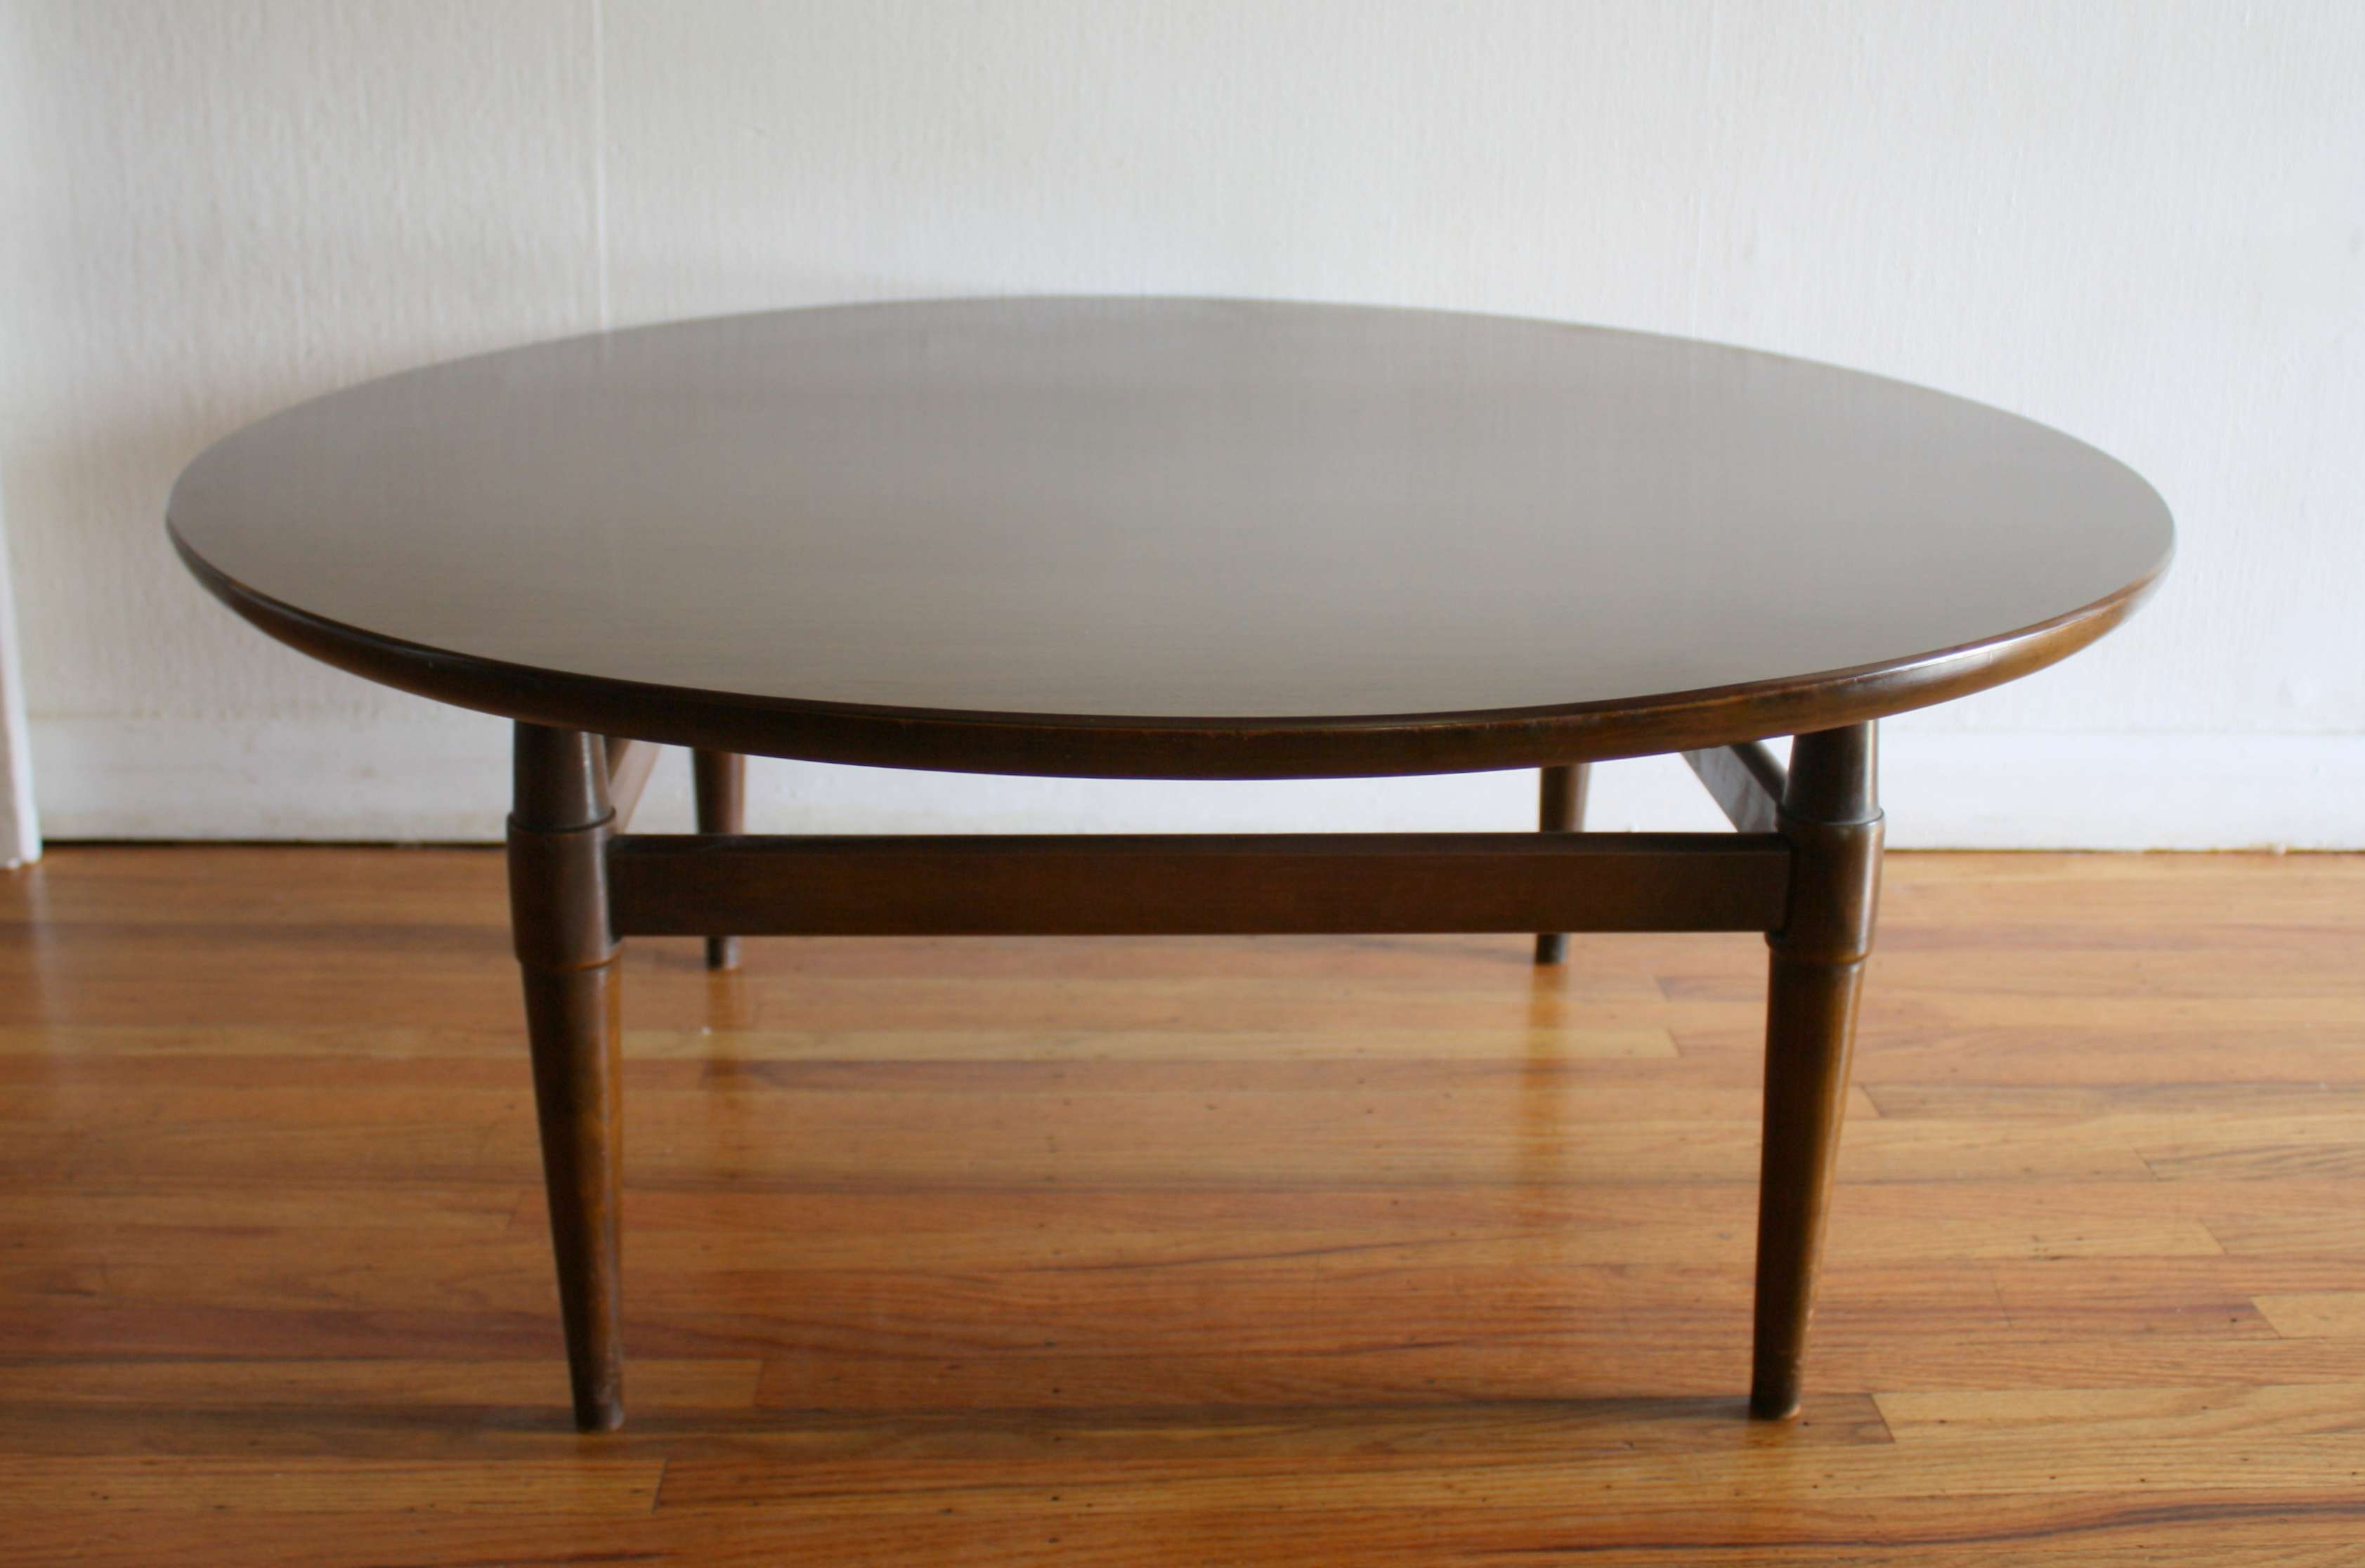 2017 Elephant Glass Coffee Tables In Coffee Tables : Round Glass Top Coffee Table With Metal Base (View 7 of 20)